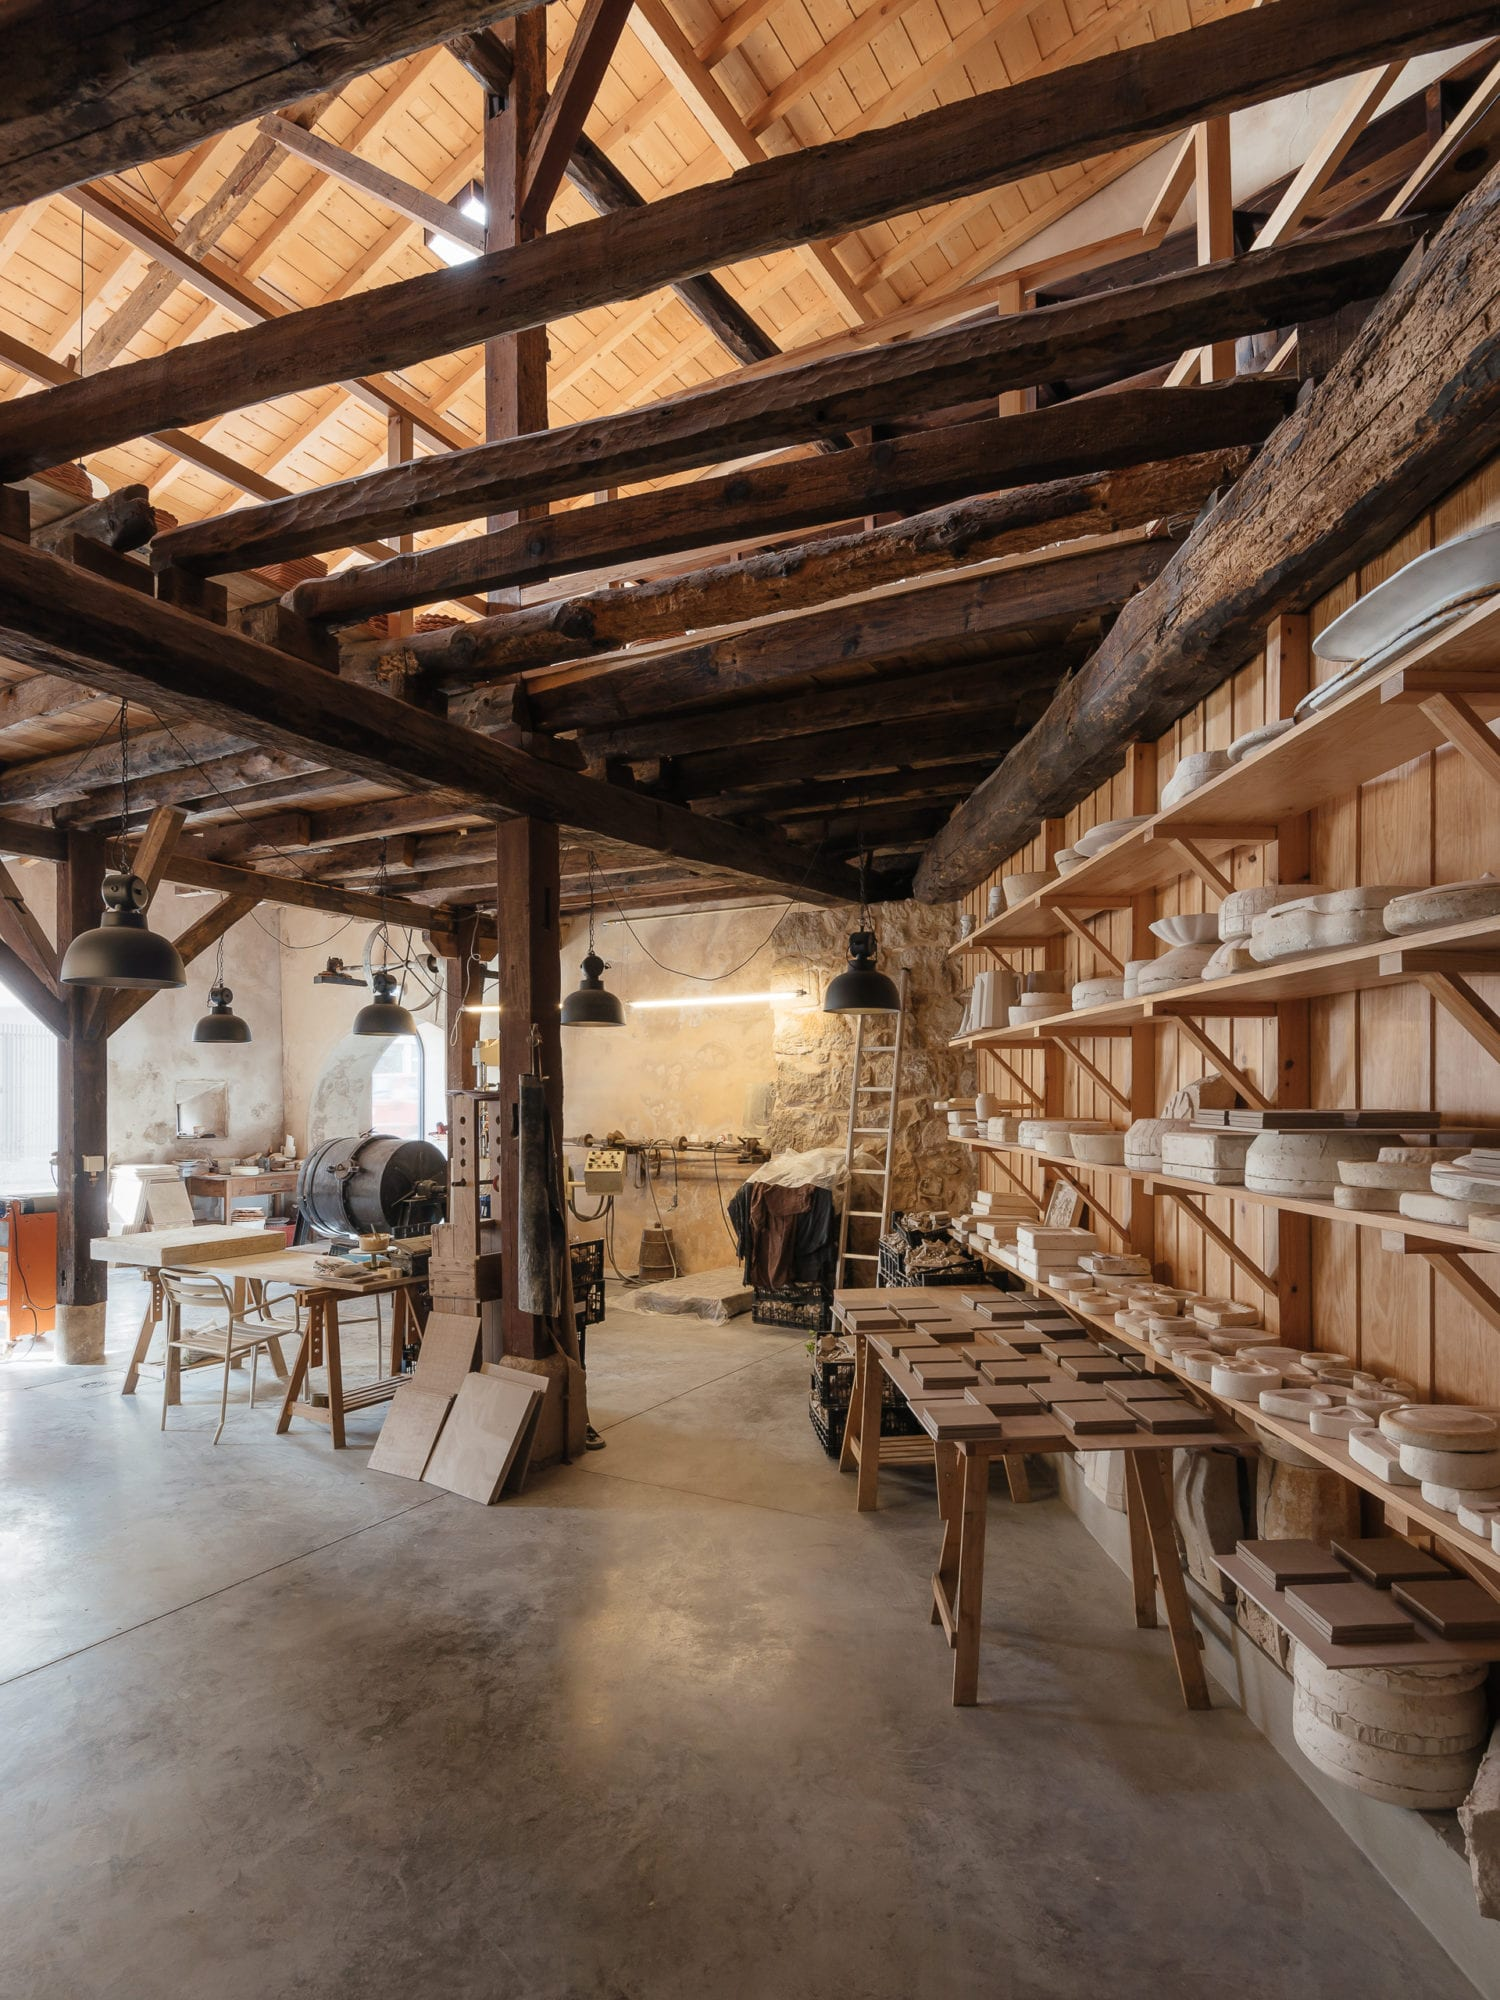 Luisa Bebiano And Atelier Do Corvo Renovation Old Ceramic Society Of Coimbra 18th Century Building Yellowtrace 06